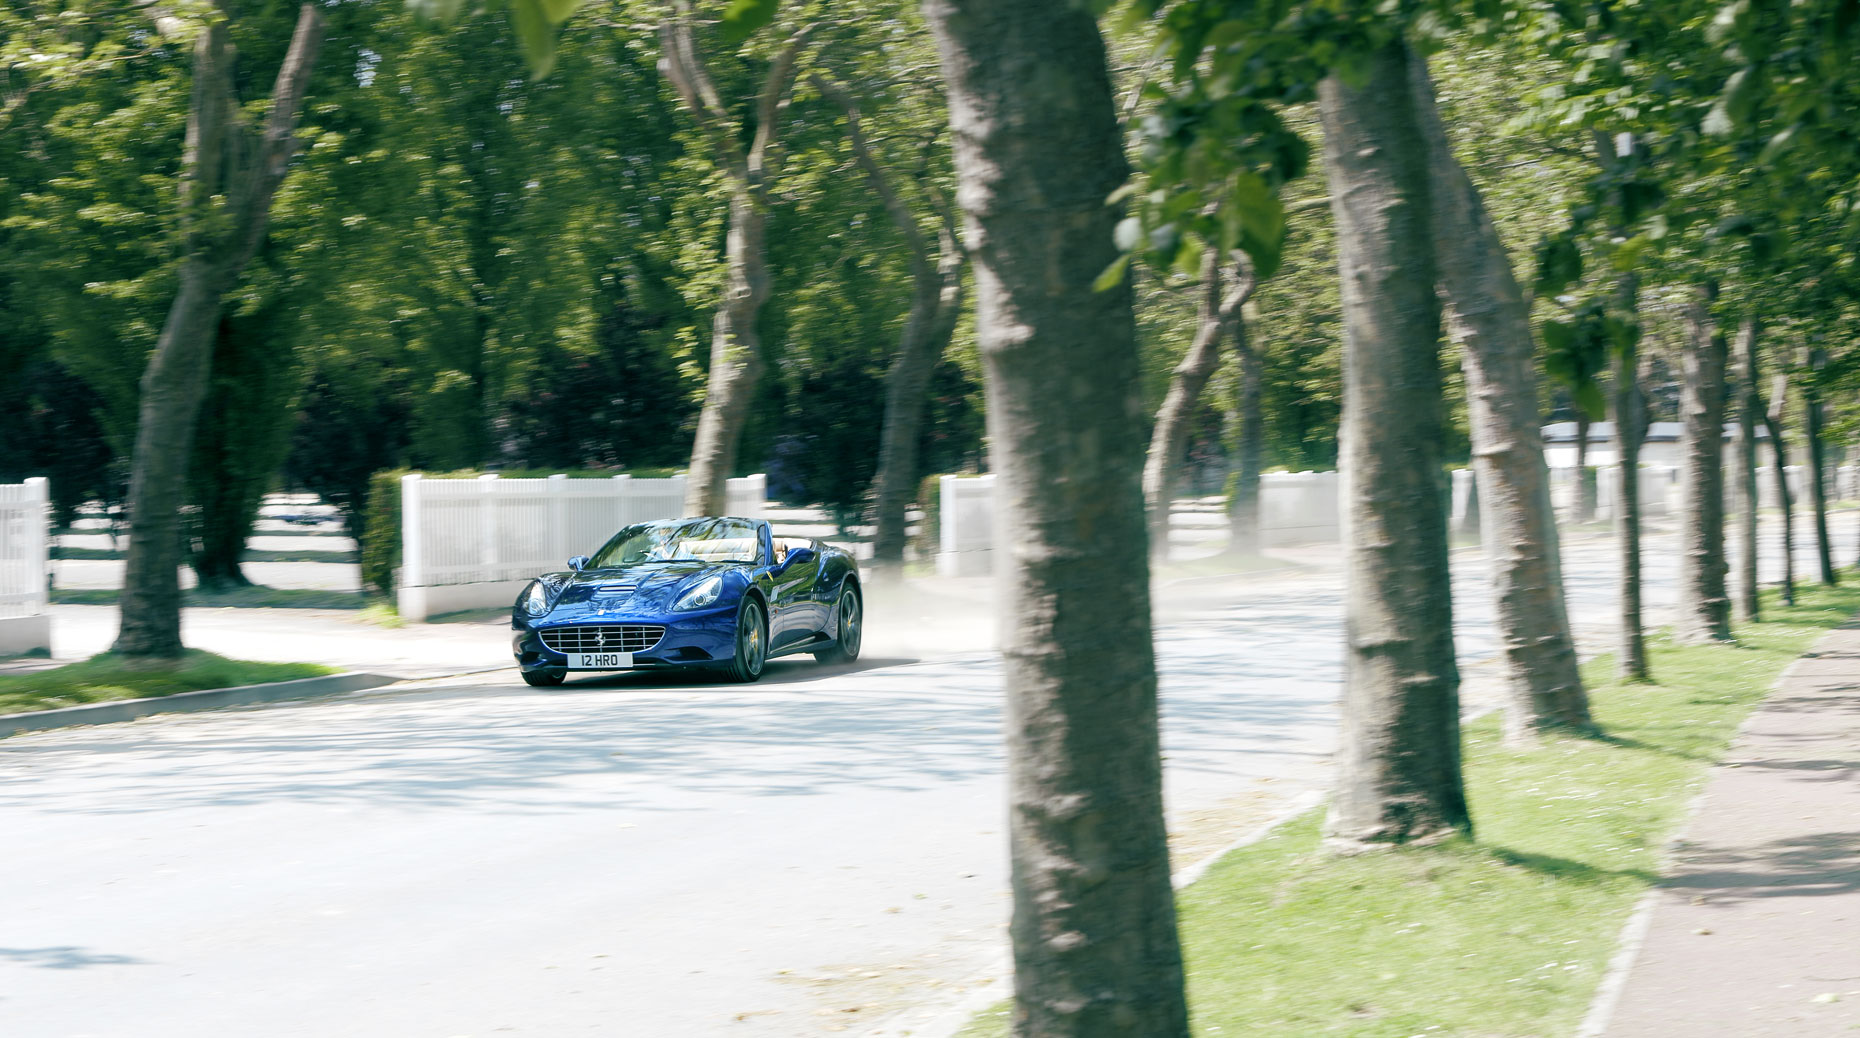 Ferrari California action inDeauville France